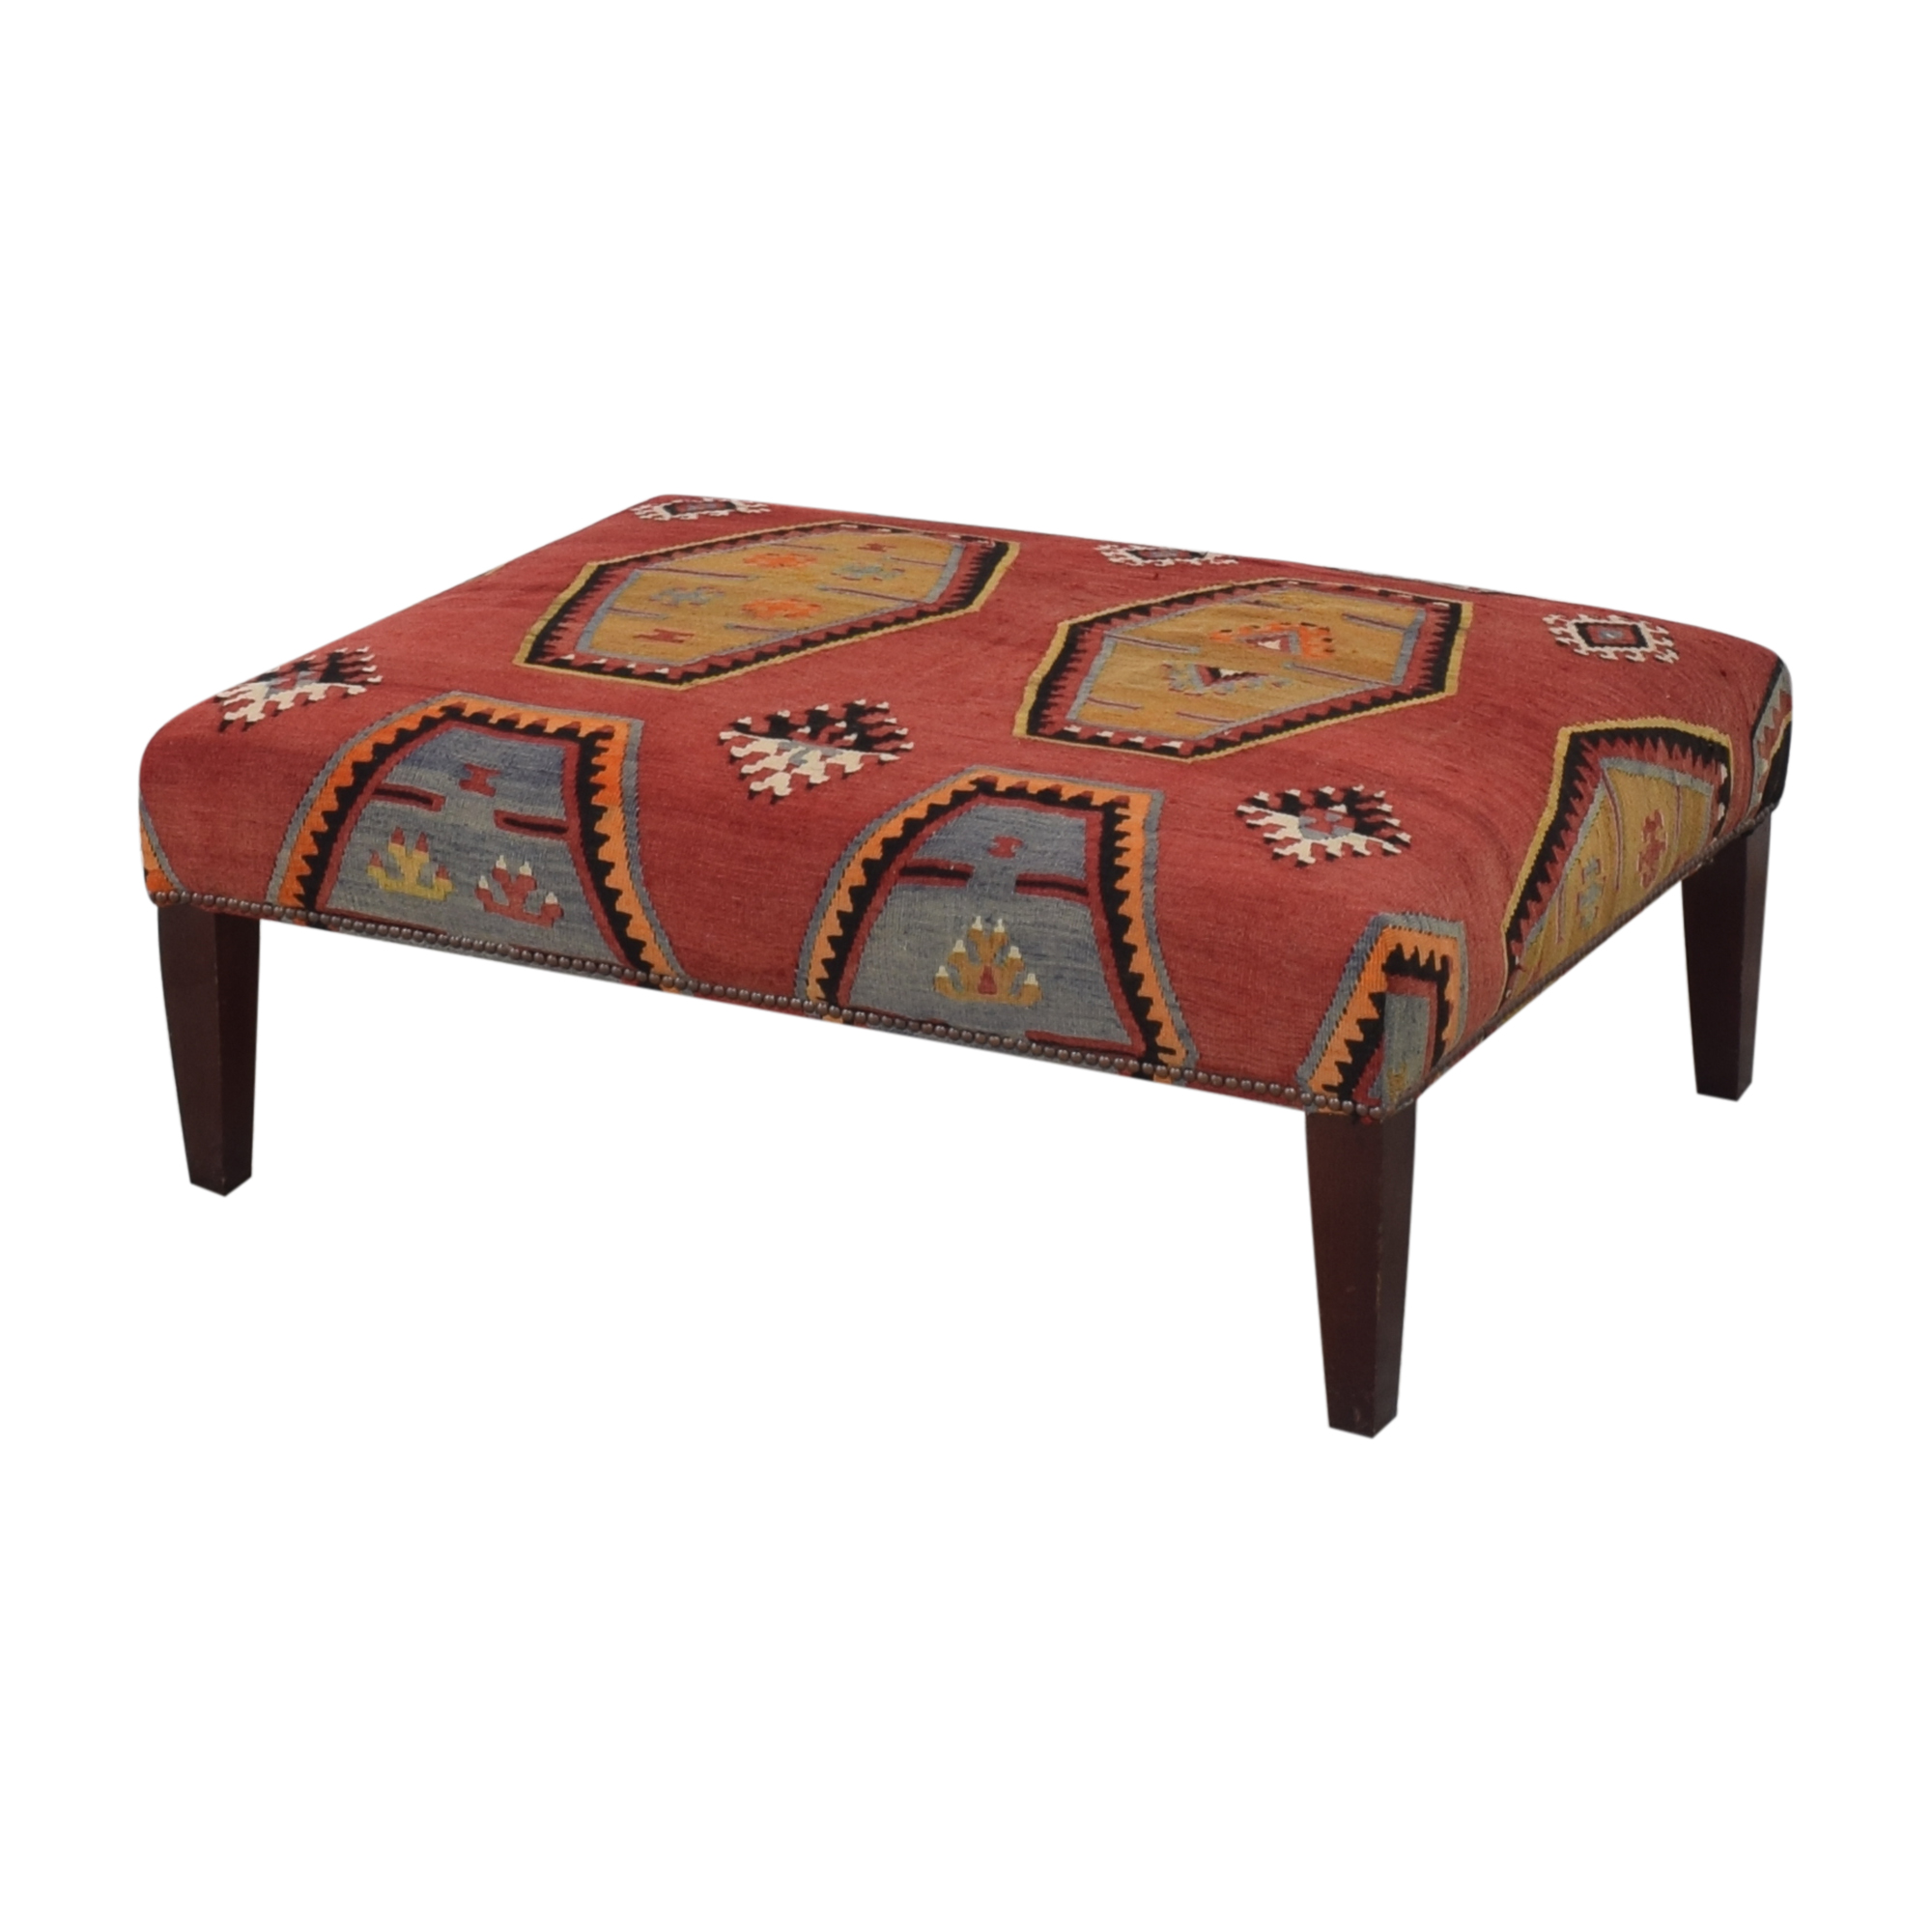 George Smith Patterned Ottoman George Smith